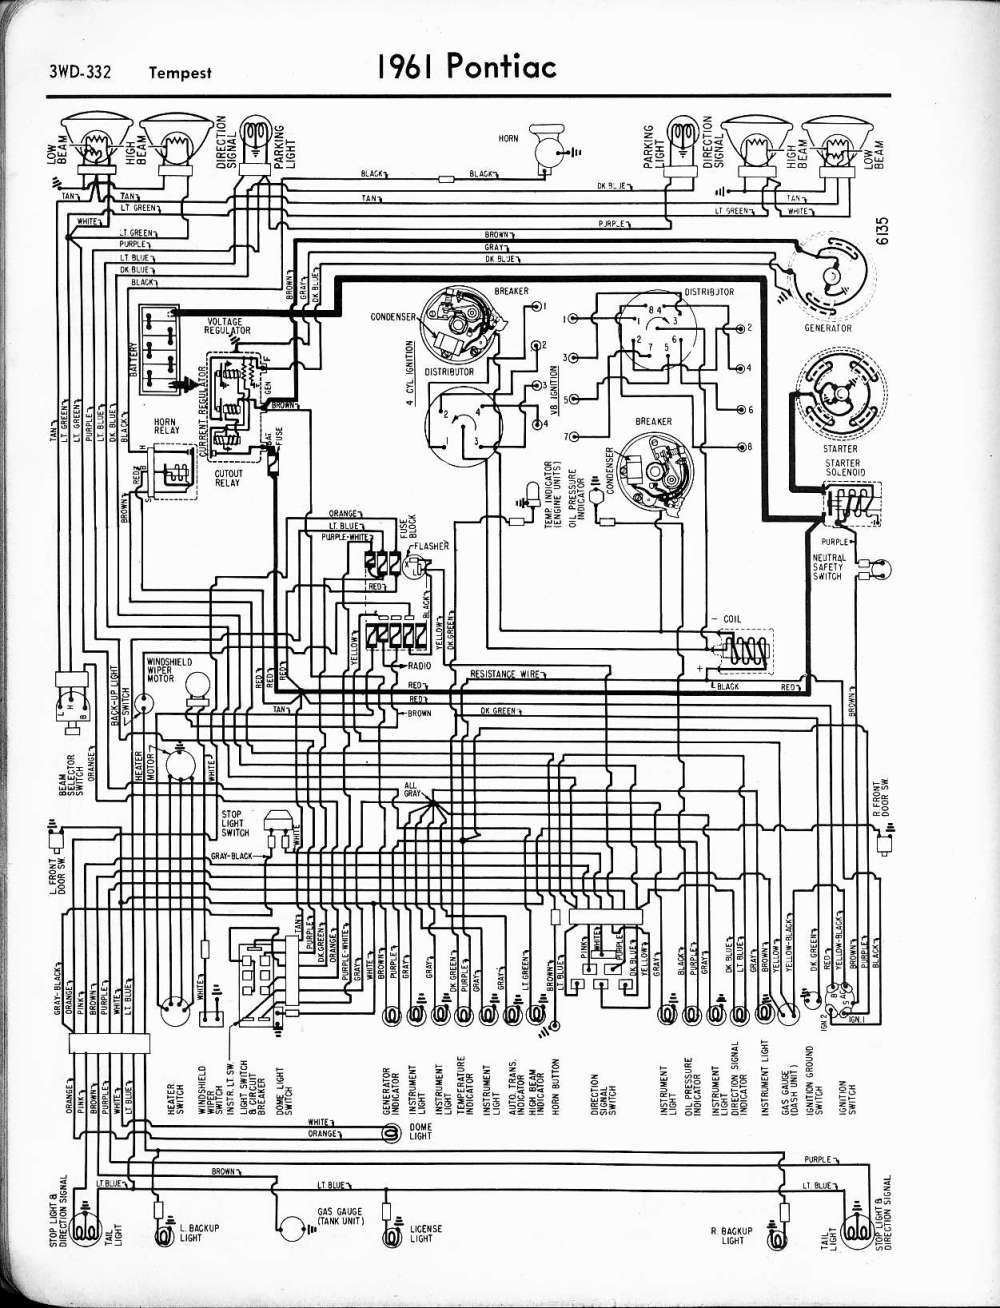 medium resolution of 1961 tempest wiring